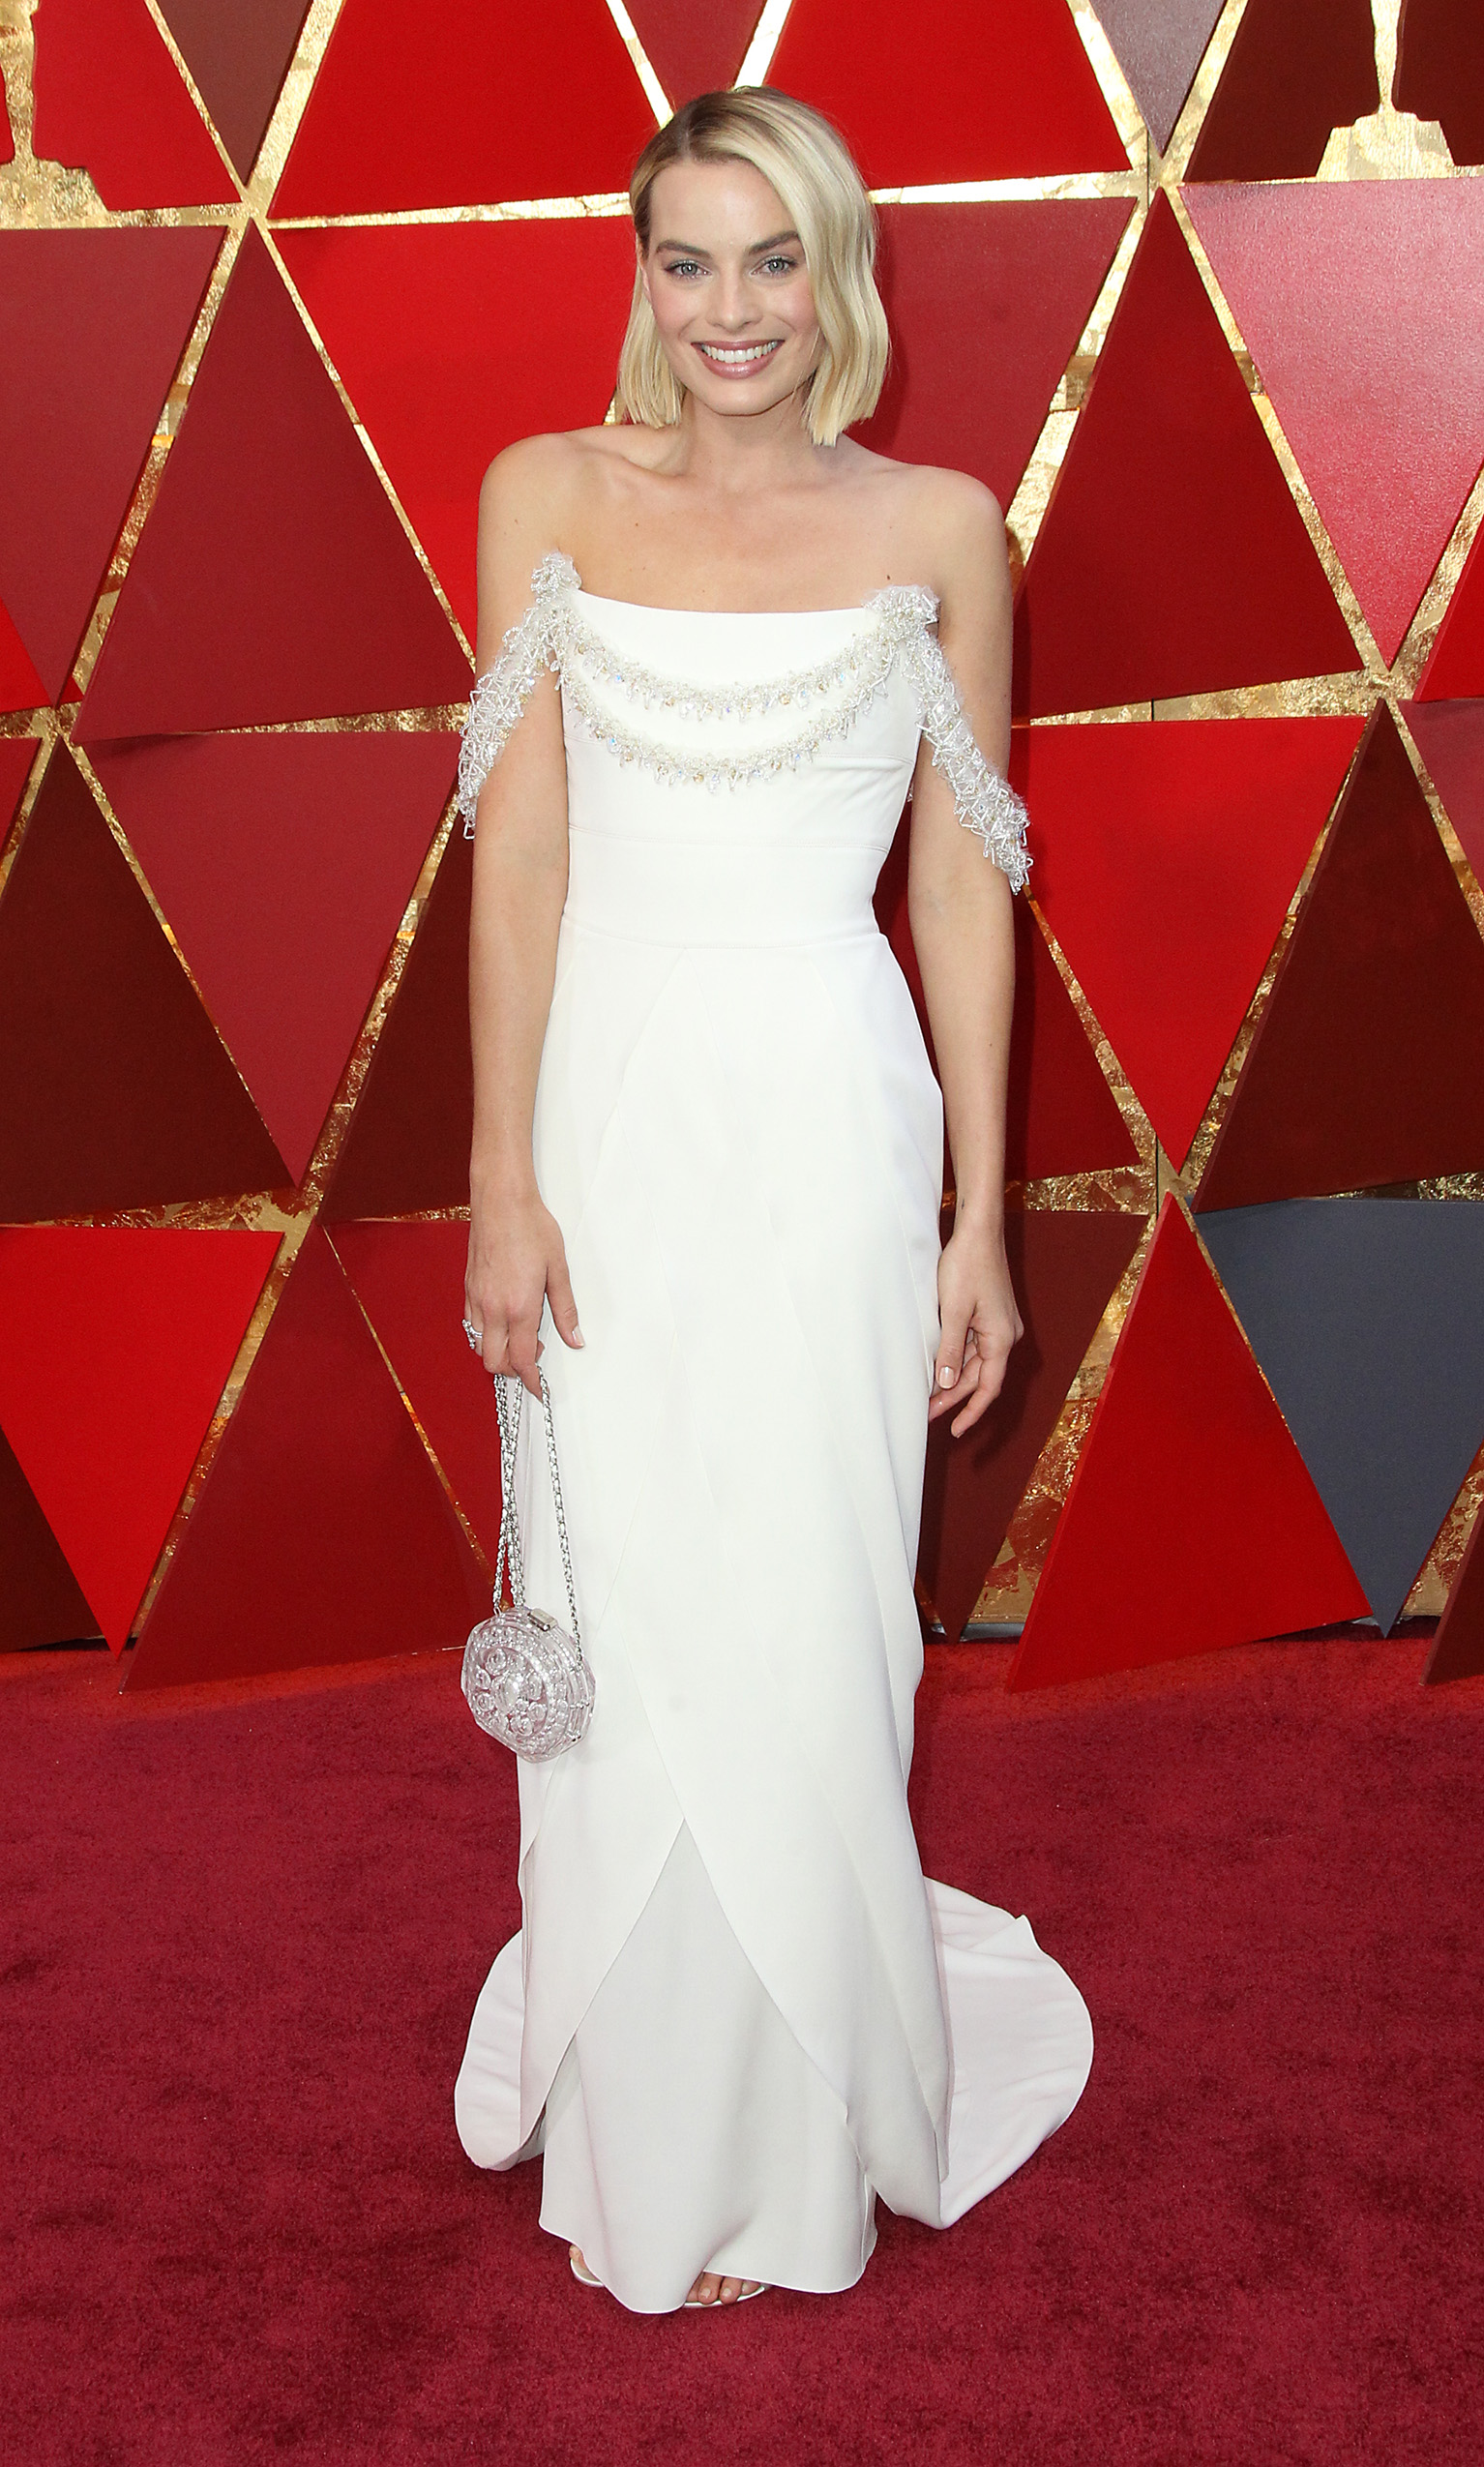 At first I wasn't totally sold on the embellishment on her classic custom Chanel gown (designed by Karl Lagerfeld himself!) as it looked a bit like Christmas garland. But alas, the overall look was just too beautiful to discount. Margot completed her look with Chanel jewelry/purse and Roger Vivier shoes. (Image: Adriana M. Barraza/WENN.com)<p></p>